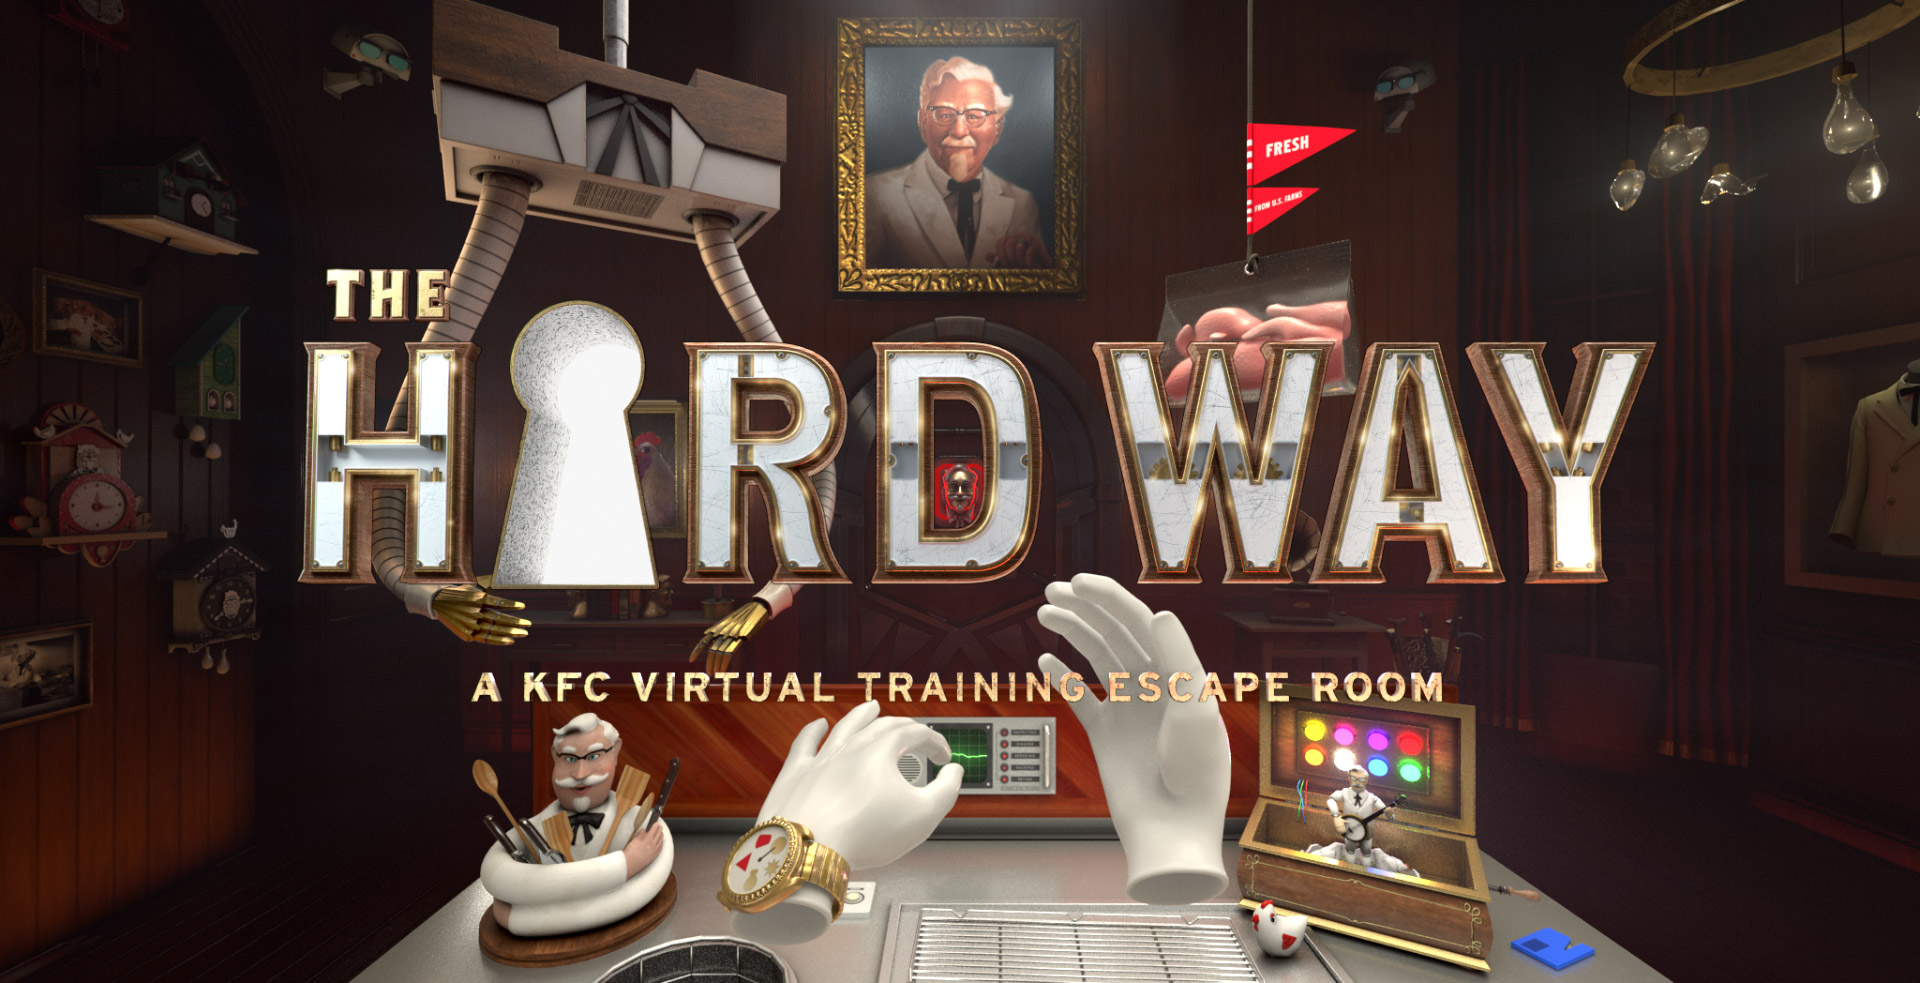 kfc vr training innovative use of vr tech